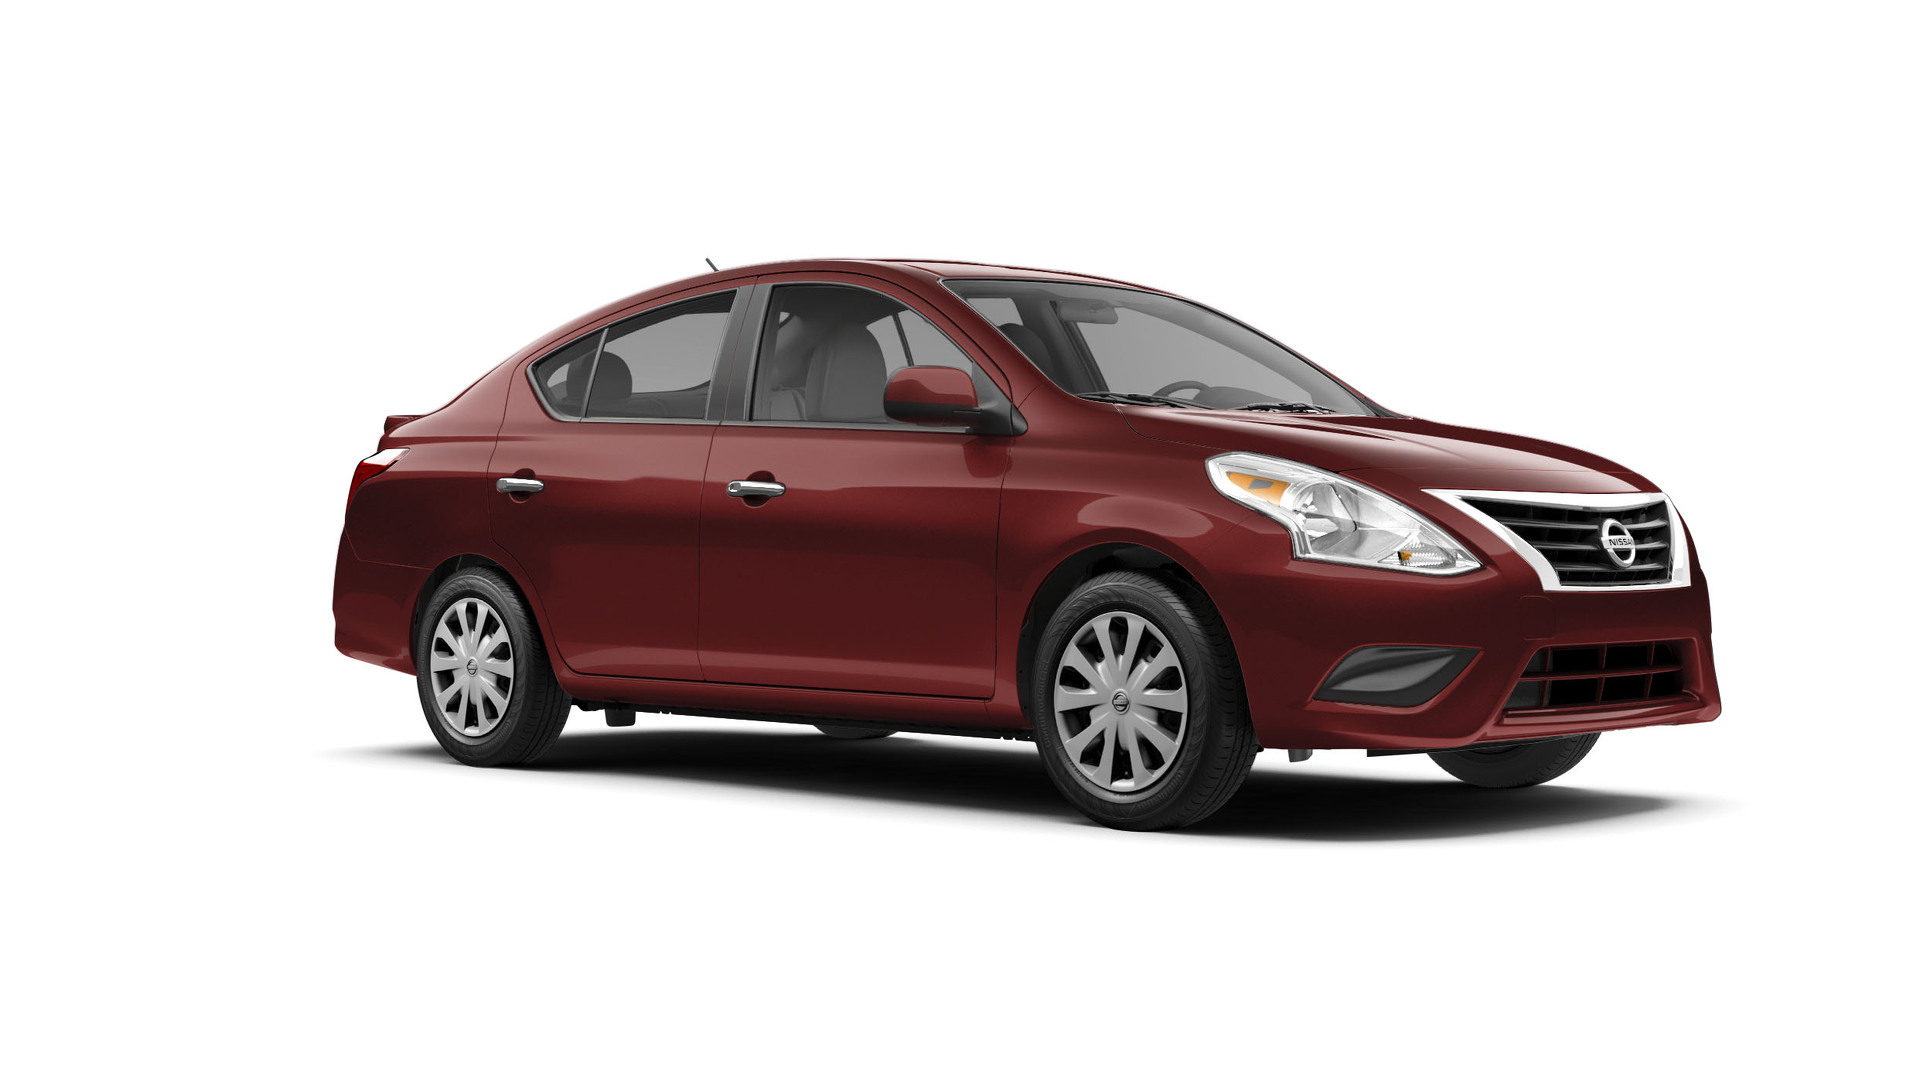 2017 nissan versa starts at 12 825 in the u s. Black Bedroom Furniture Sets. Home Design Ideas